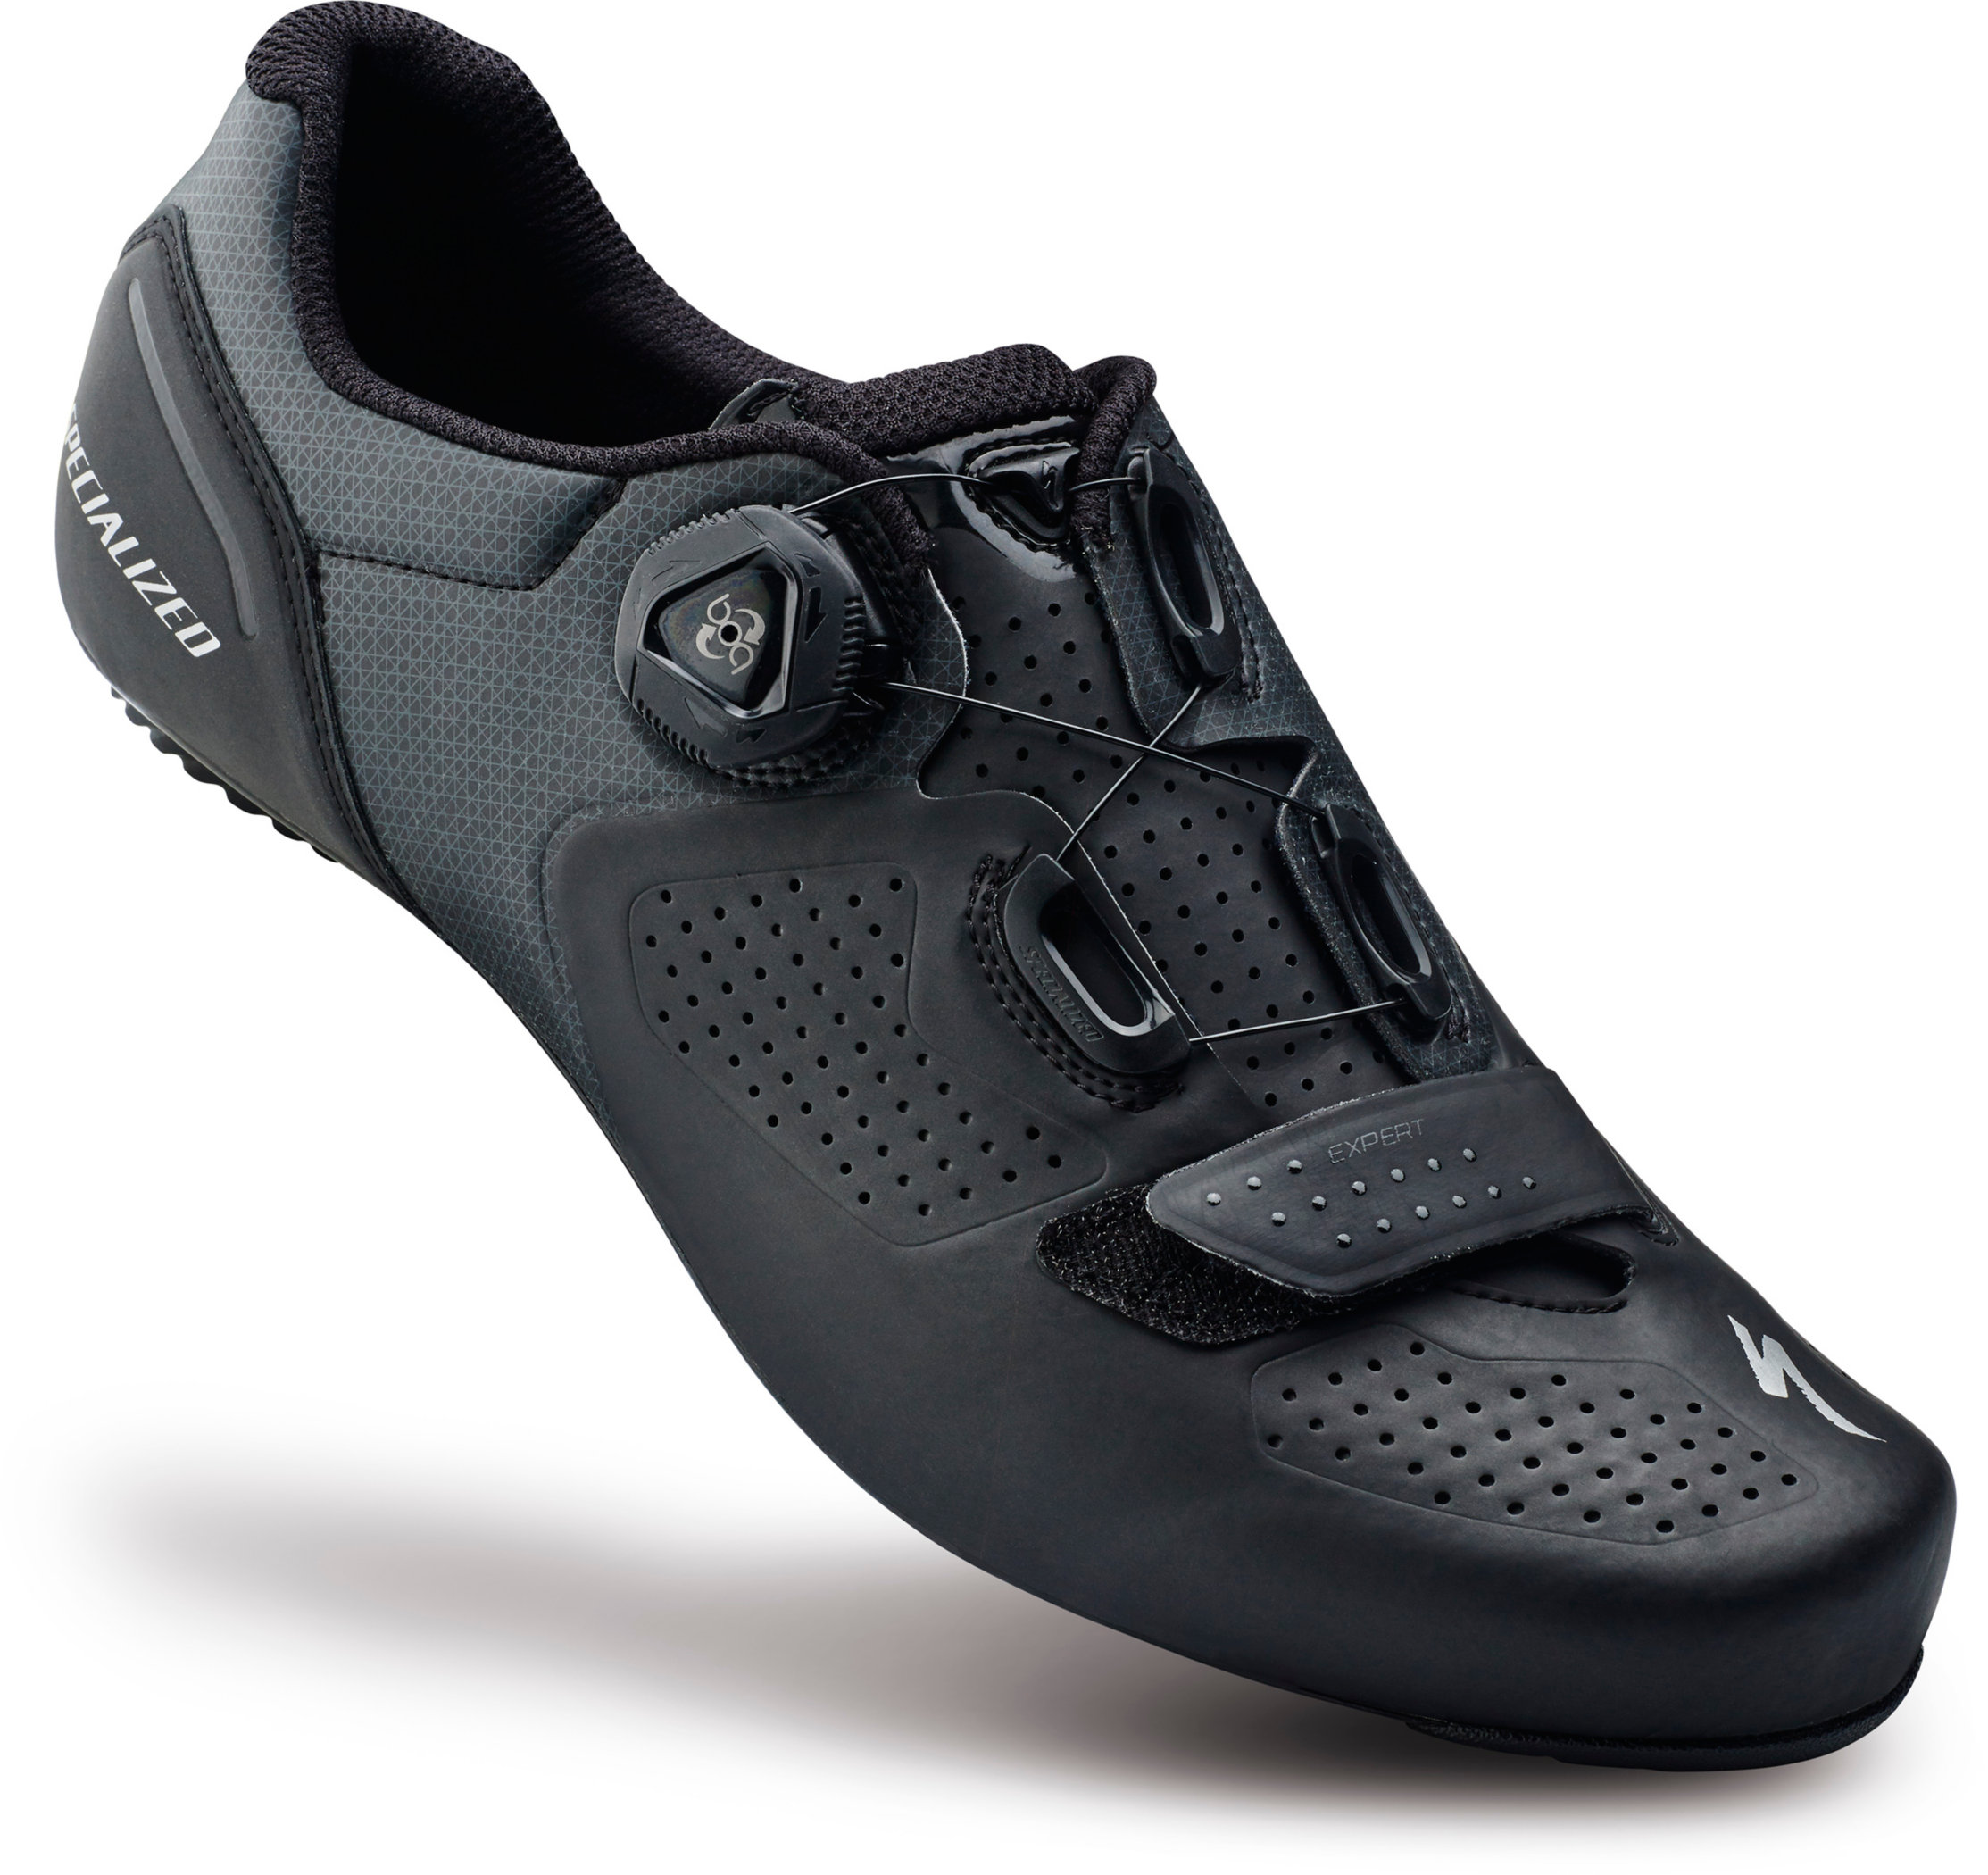 SPECIALIZED EXPERT RD SHOE BLK 47/13 - Bikedreams & Dustbikes